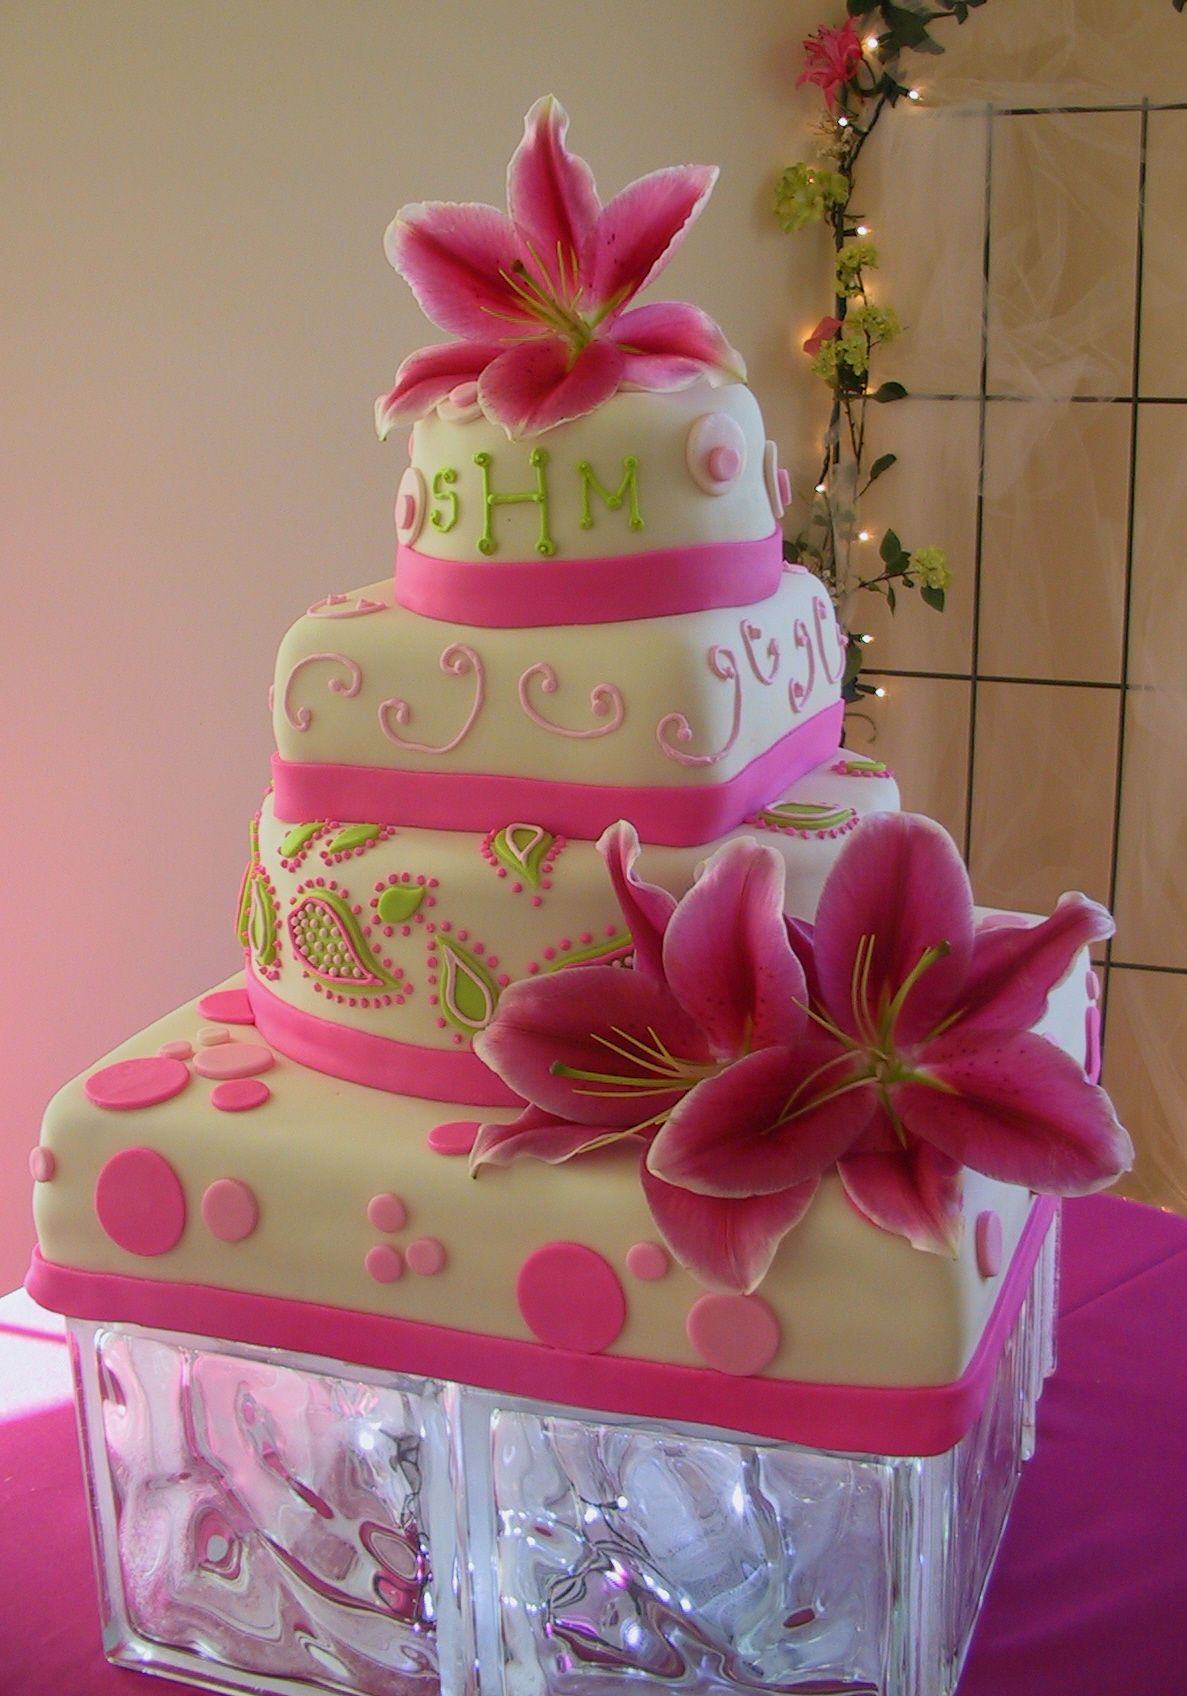 hot pink wedding cake ideas fondant stargazer lilly pink lime green and paisley 15341